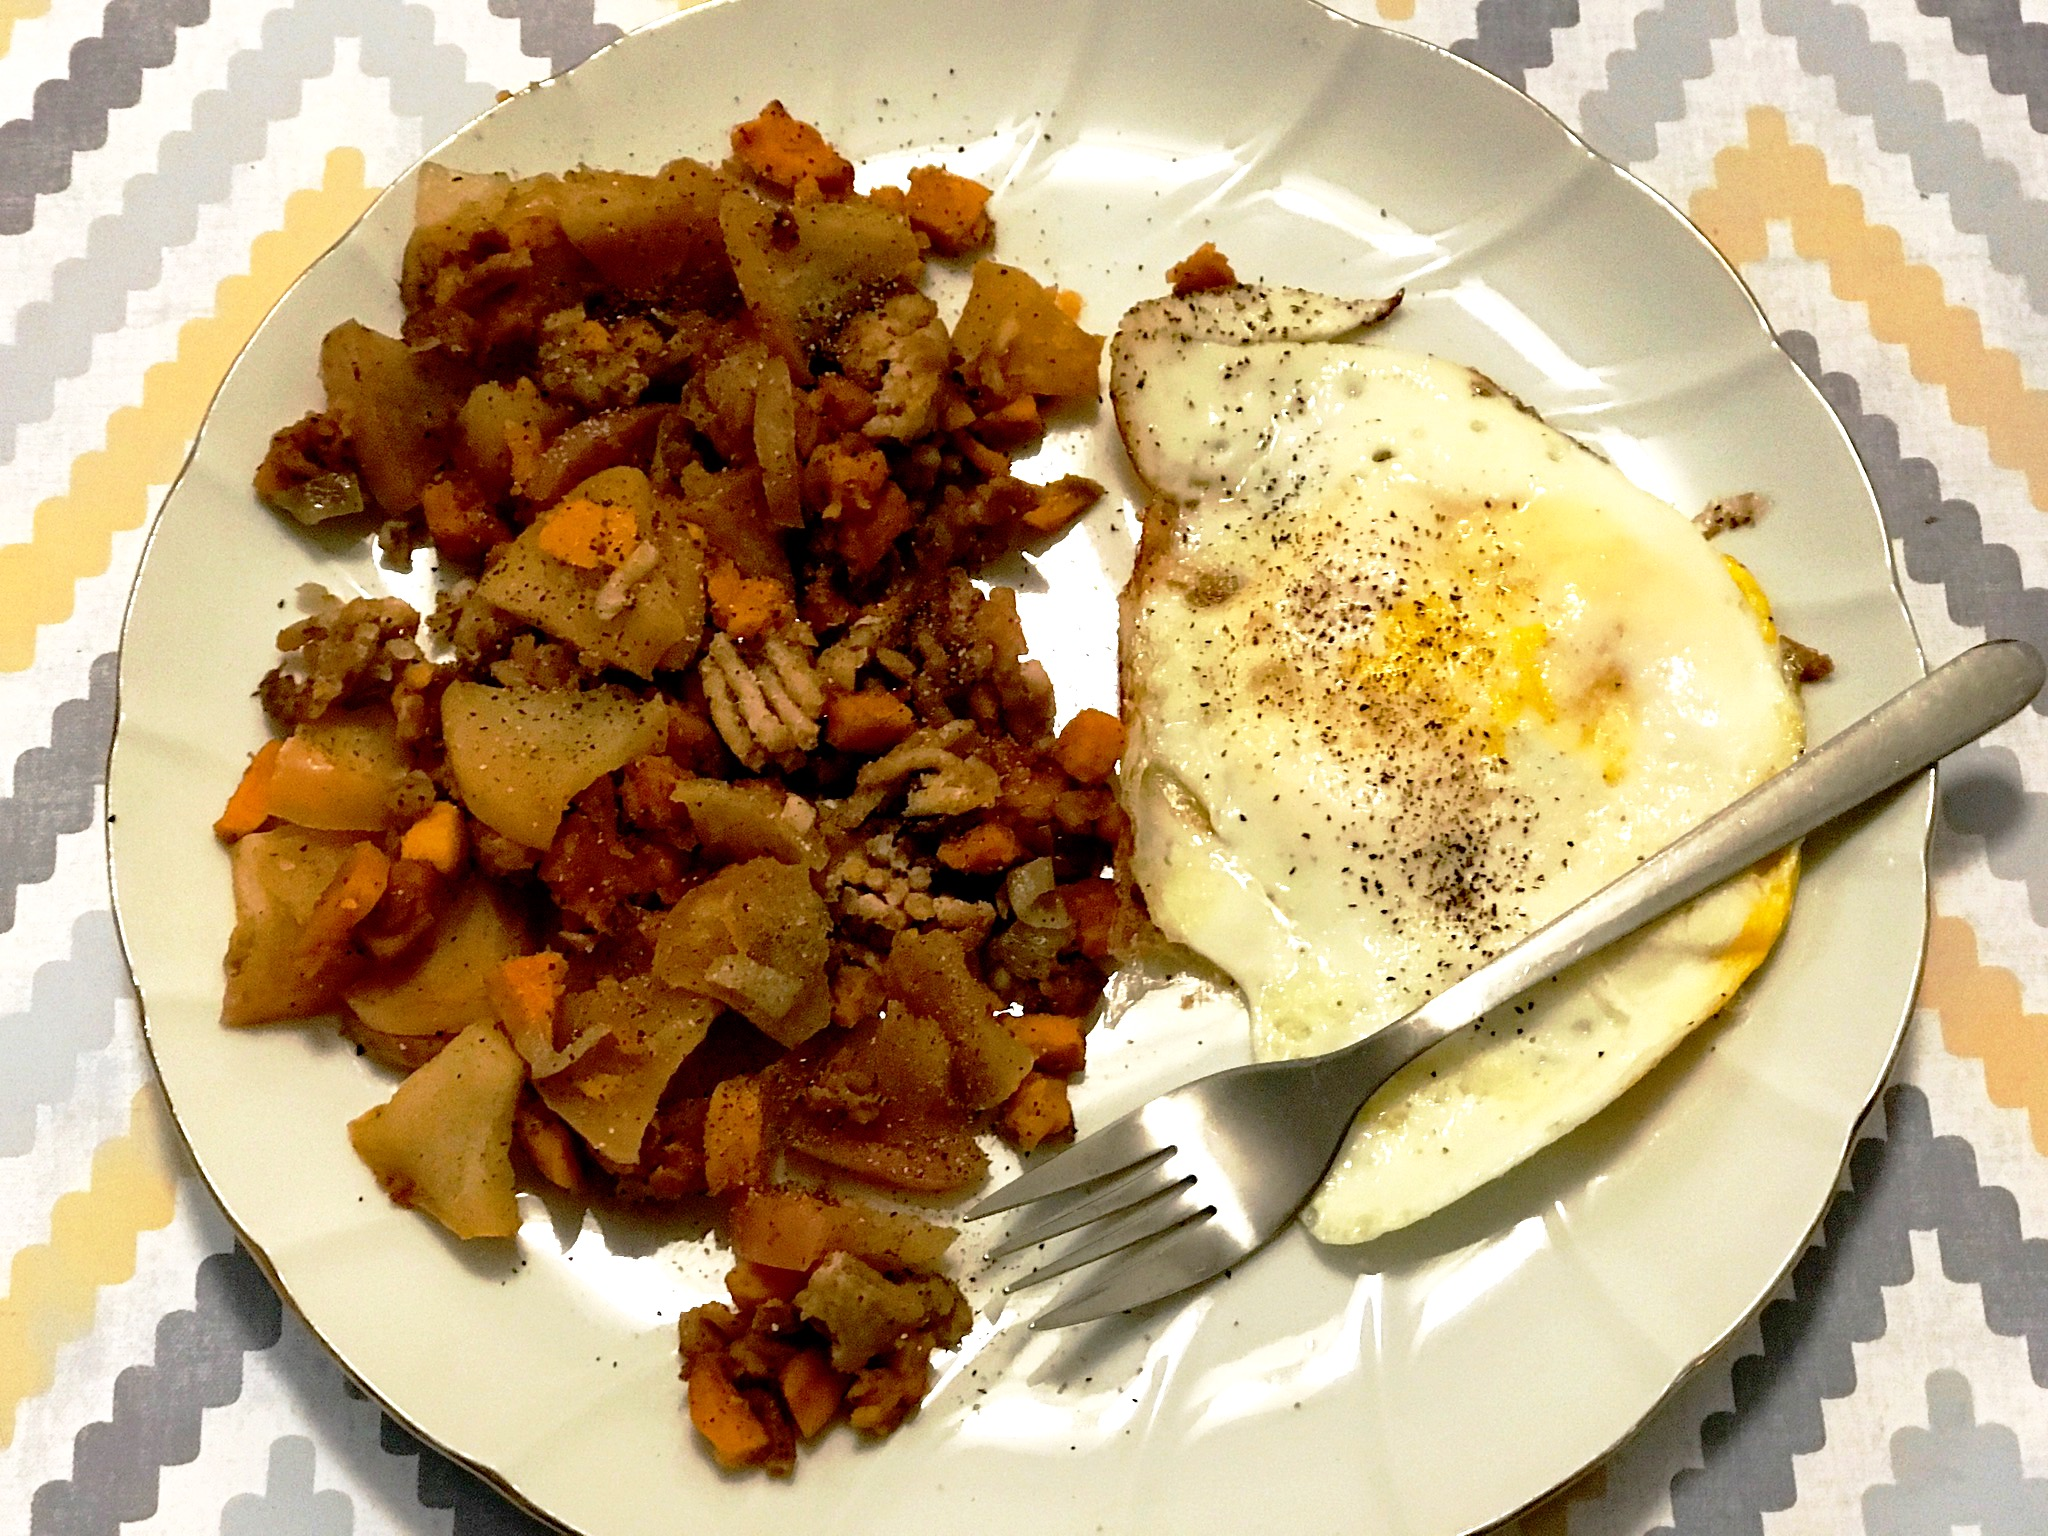 [Recipe] Food Friday: Sweet Potato, Apple, and Chicken Hash